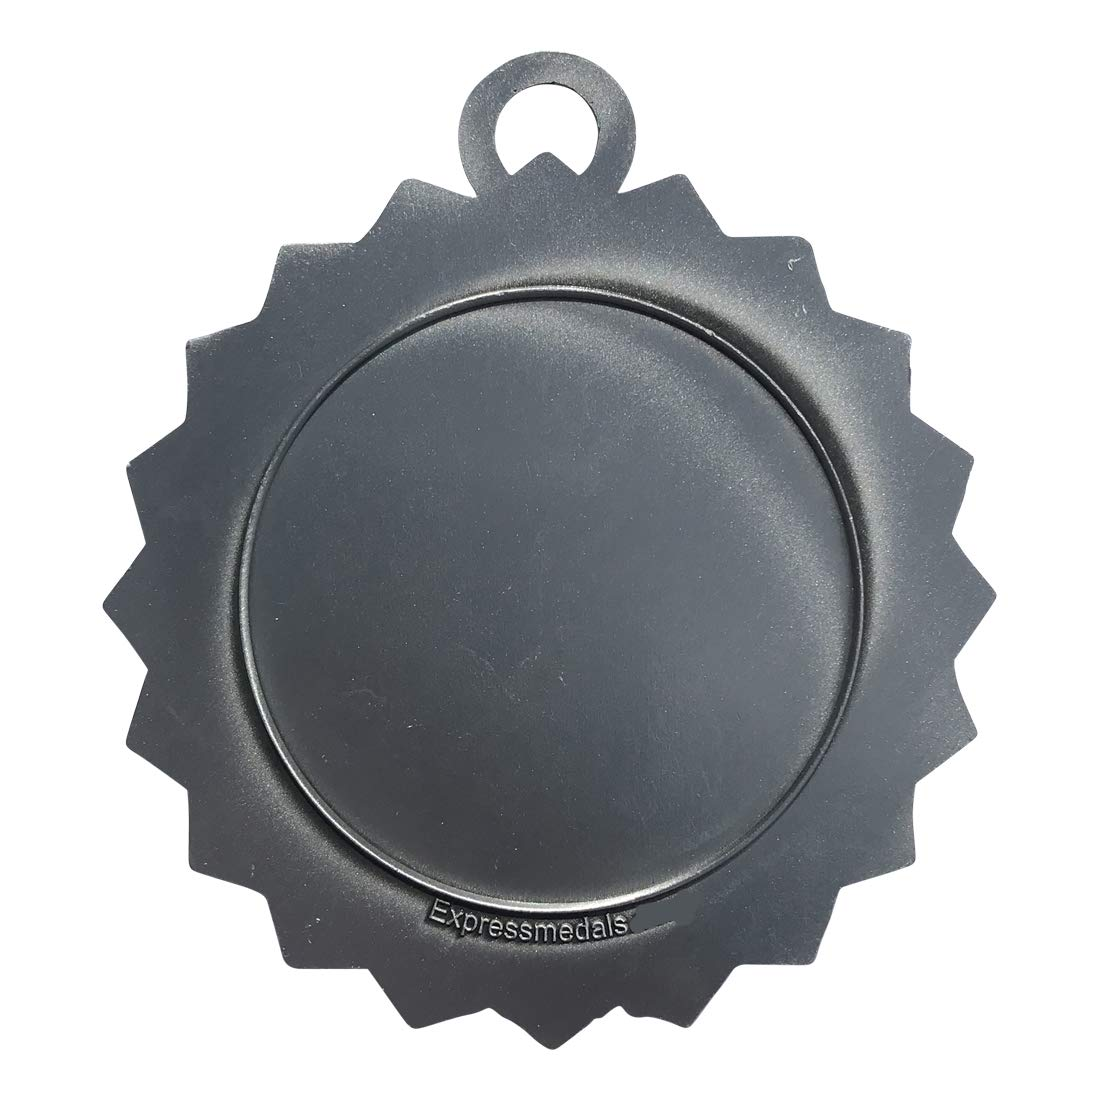 Express Medals 1 to 50 Packs Cornhole Silver Medal Trophy Award with Neck Ribbon D03-FCL455